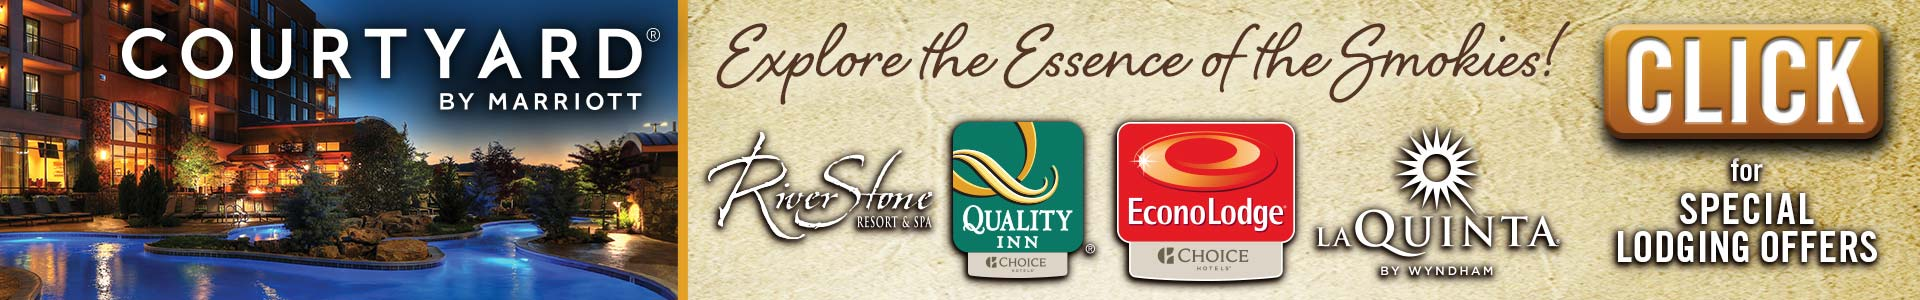 Ad - Courtyard by Marriott: Explore the essence of the Smokies. Click for special lodging offers.